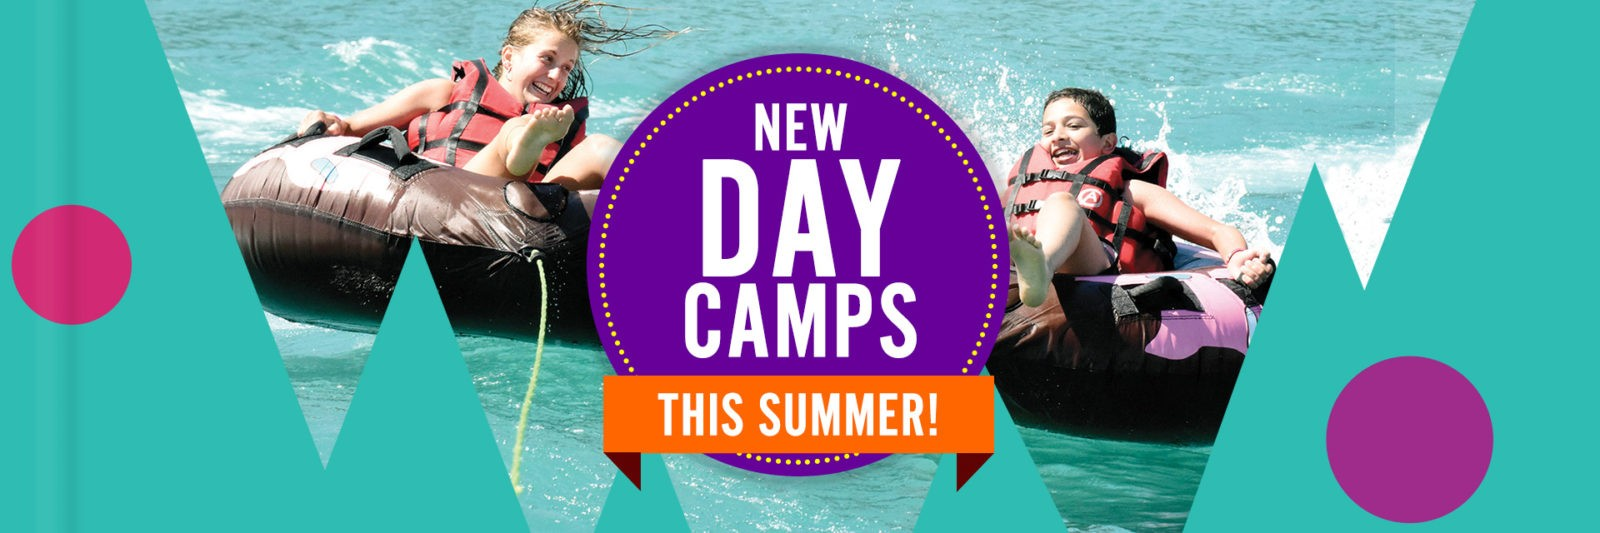 New Summer Day Camps in Verbier, Switzerland